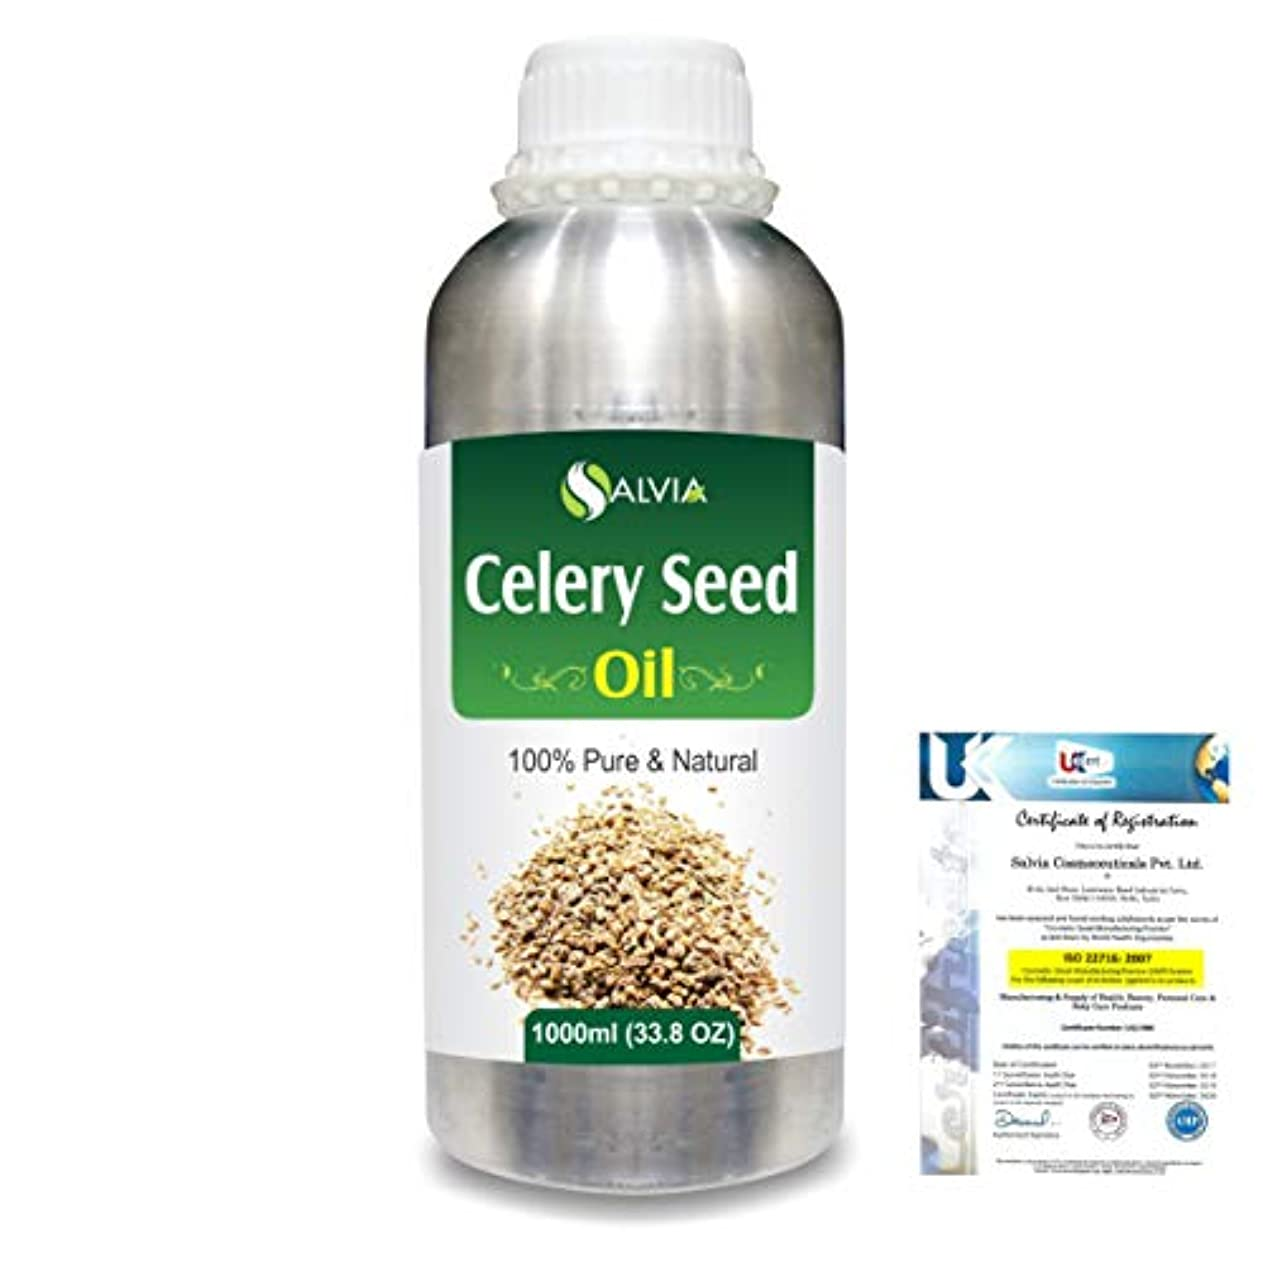 Celery Seed (Apium Graveolens) 100% Pure Natural Carrier Oil 1000ml/33.8fl.oz.